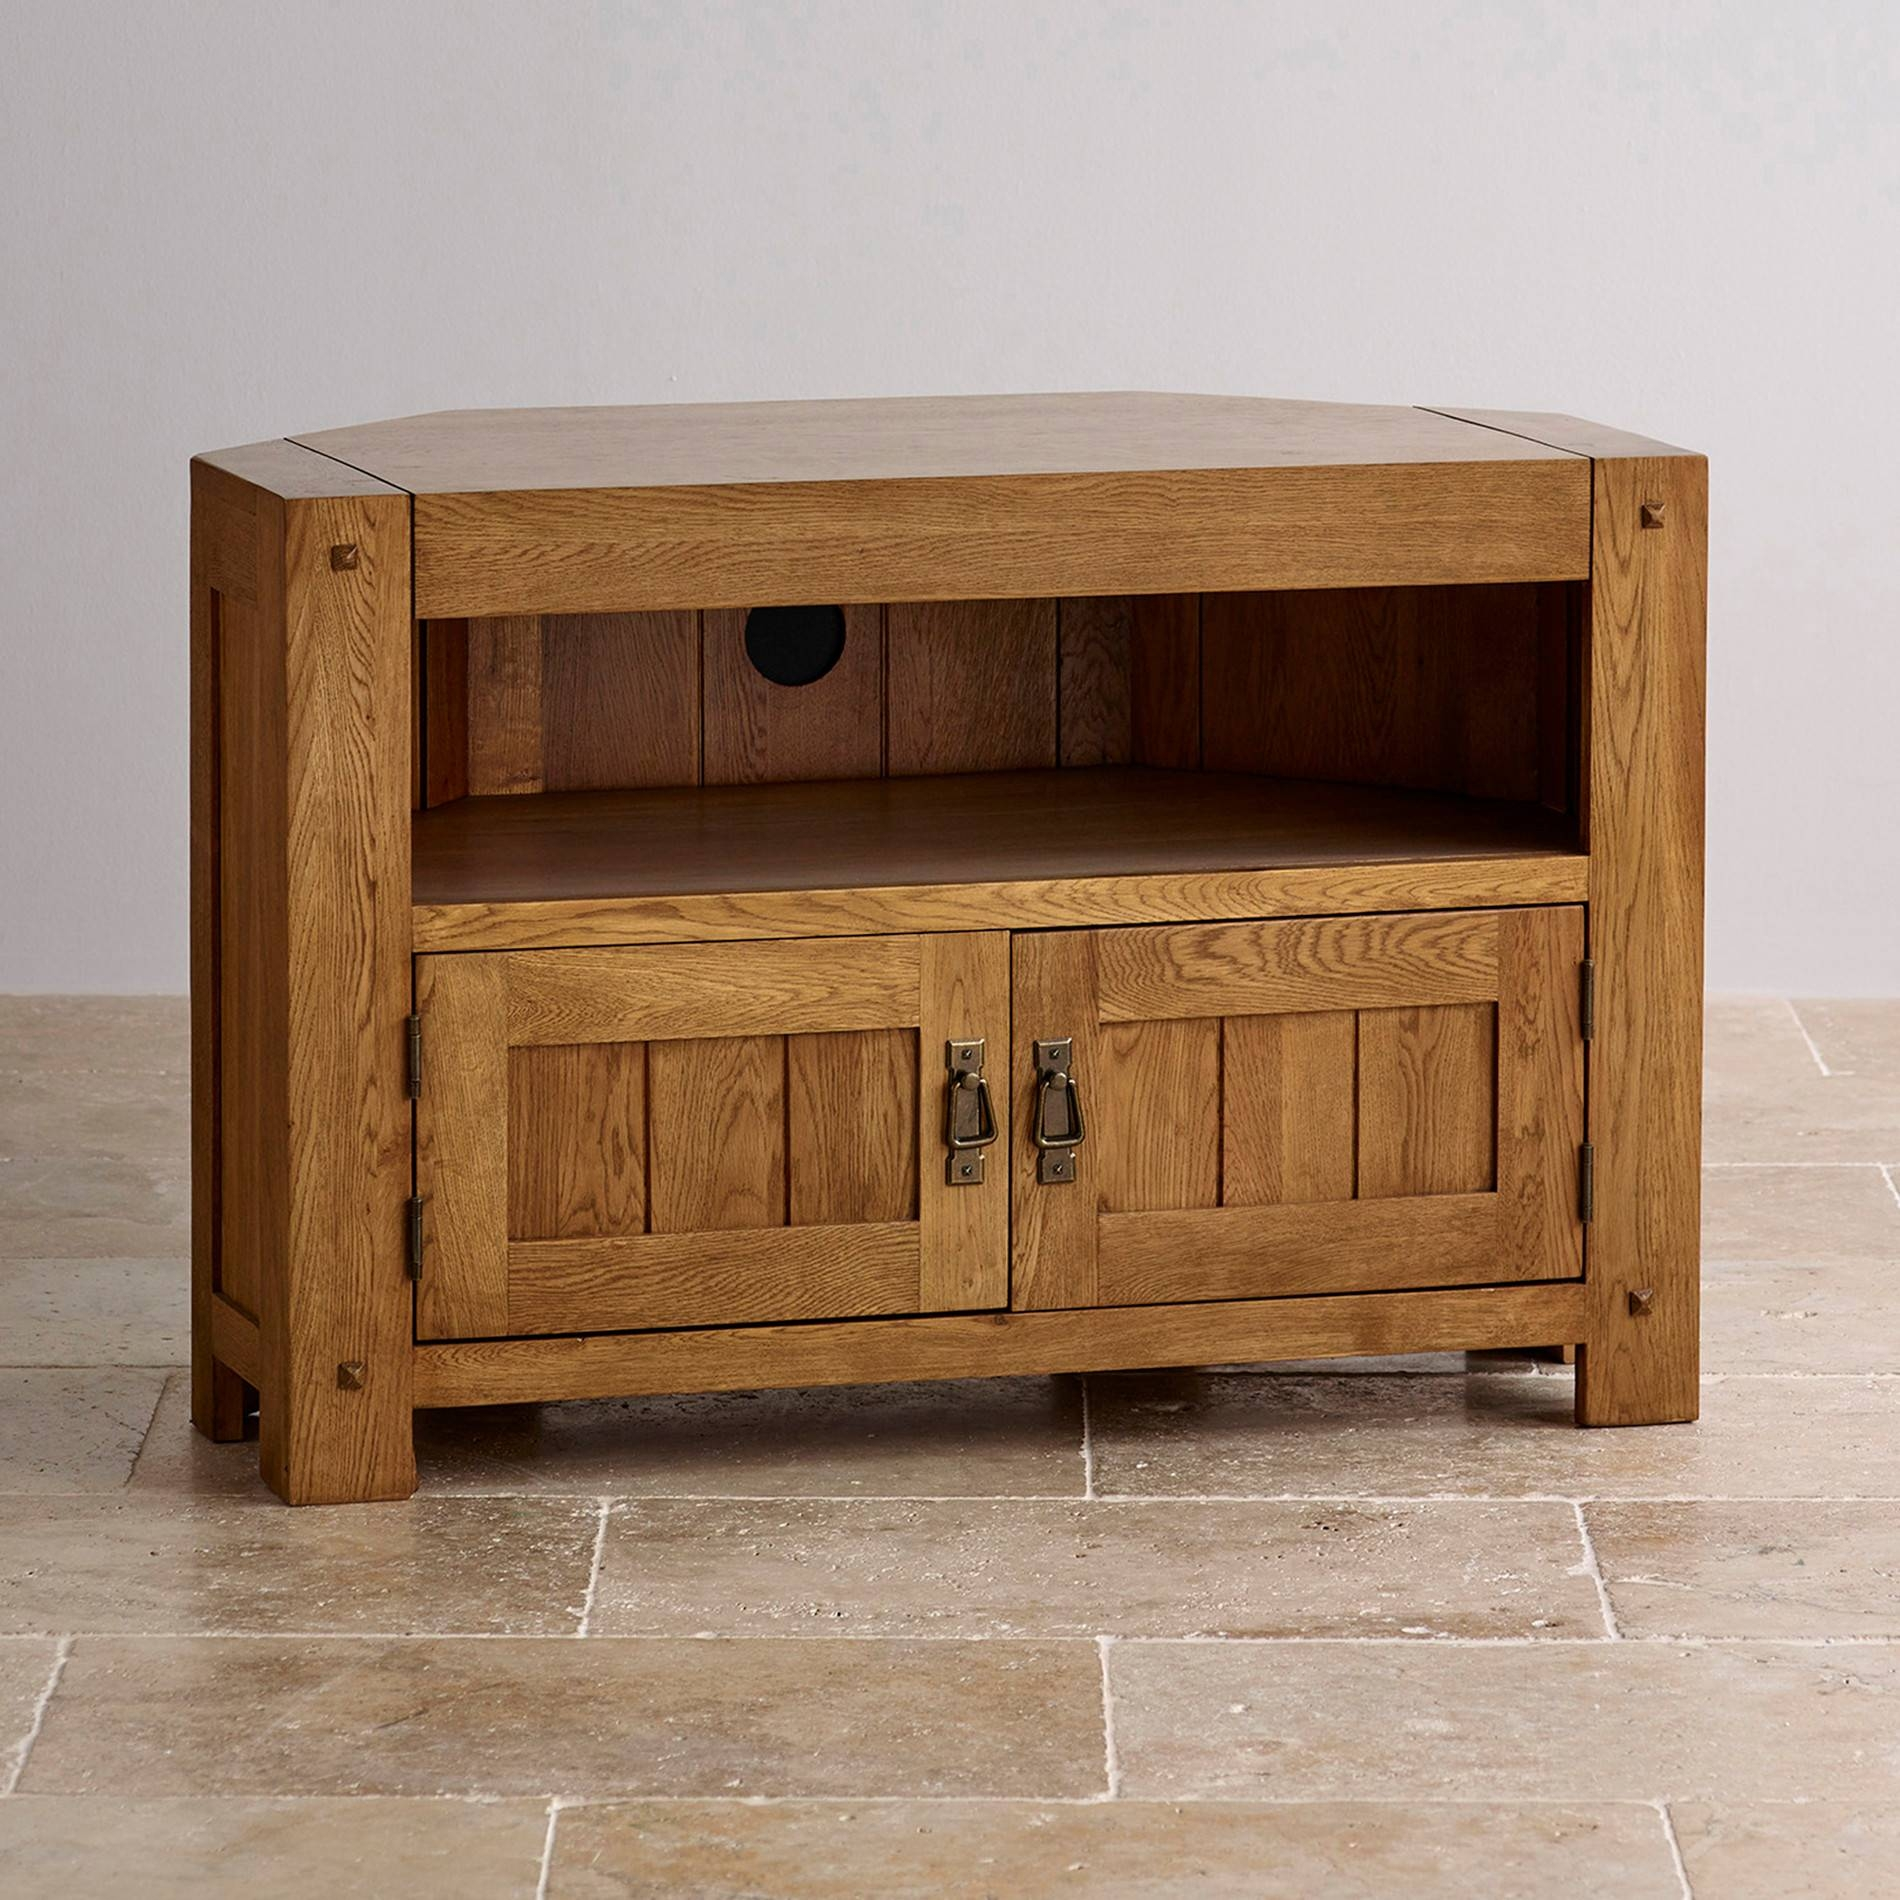 The Quercus Range - Rustic Solid Oak Furniture within Light Oak Corner Tv Cabinets (Image 11 of 15)